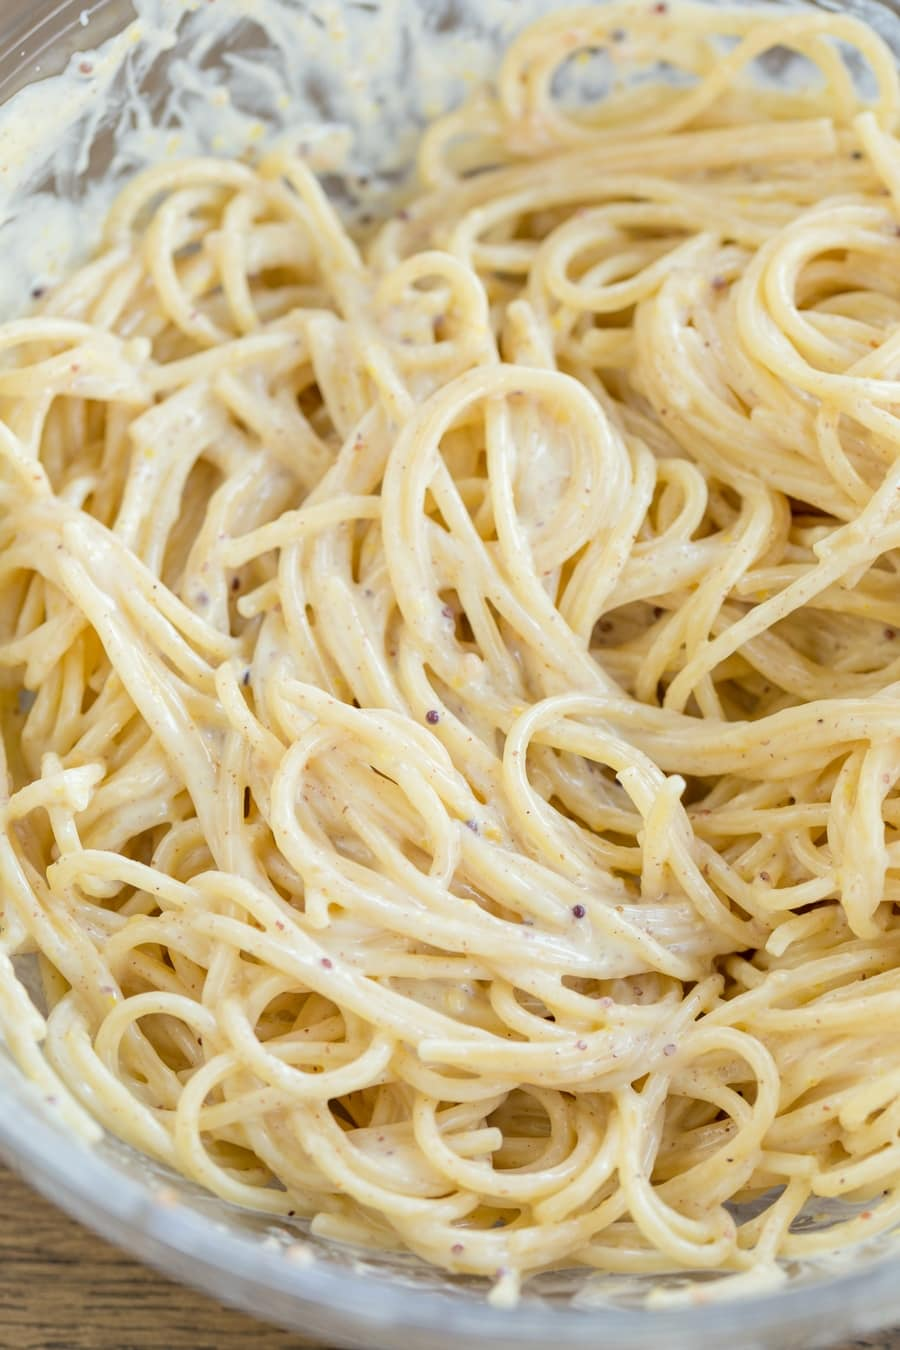 Spaghetti with creamy mustard sauce in a bowl.